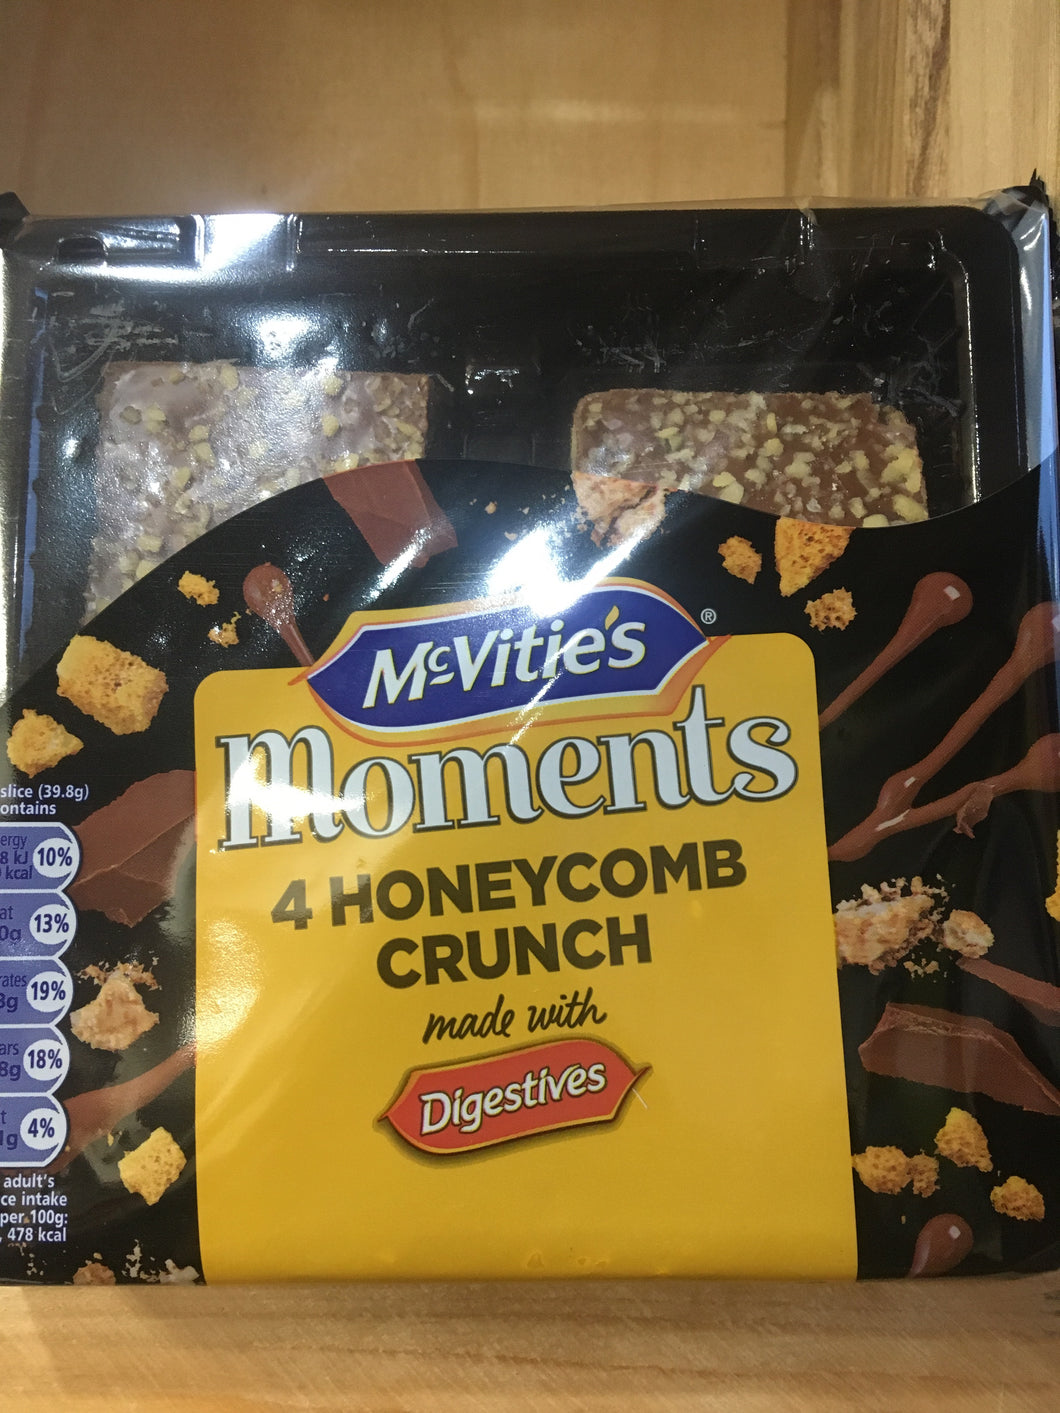 McVitie's Moments 4x Honeycomb Crunch Digestive Cake Bars